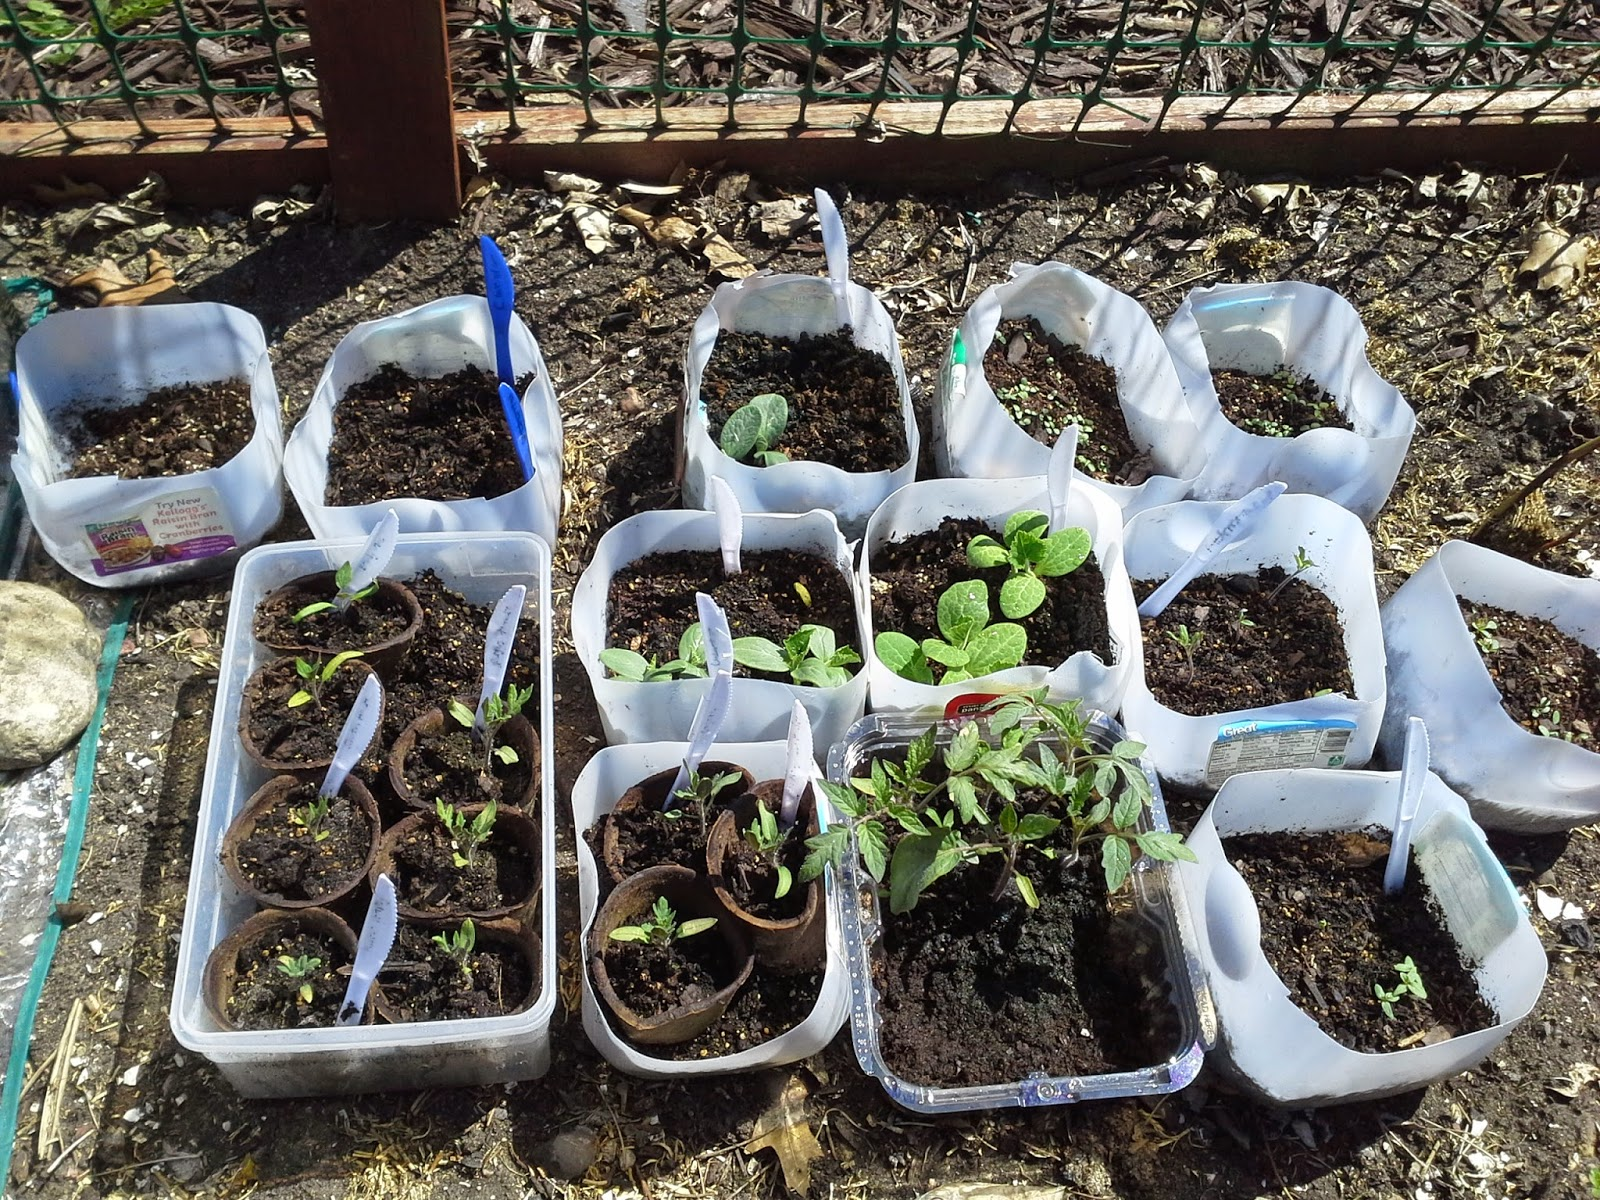 Hardening off tomato and squash seedlings outdoors